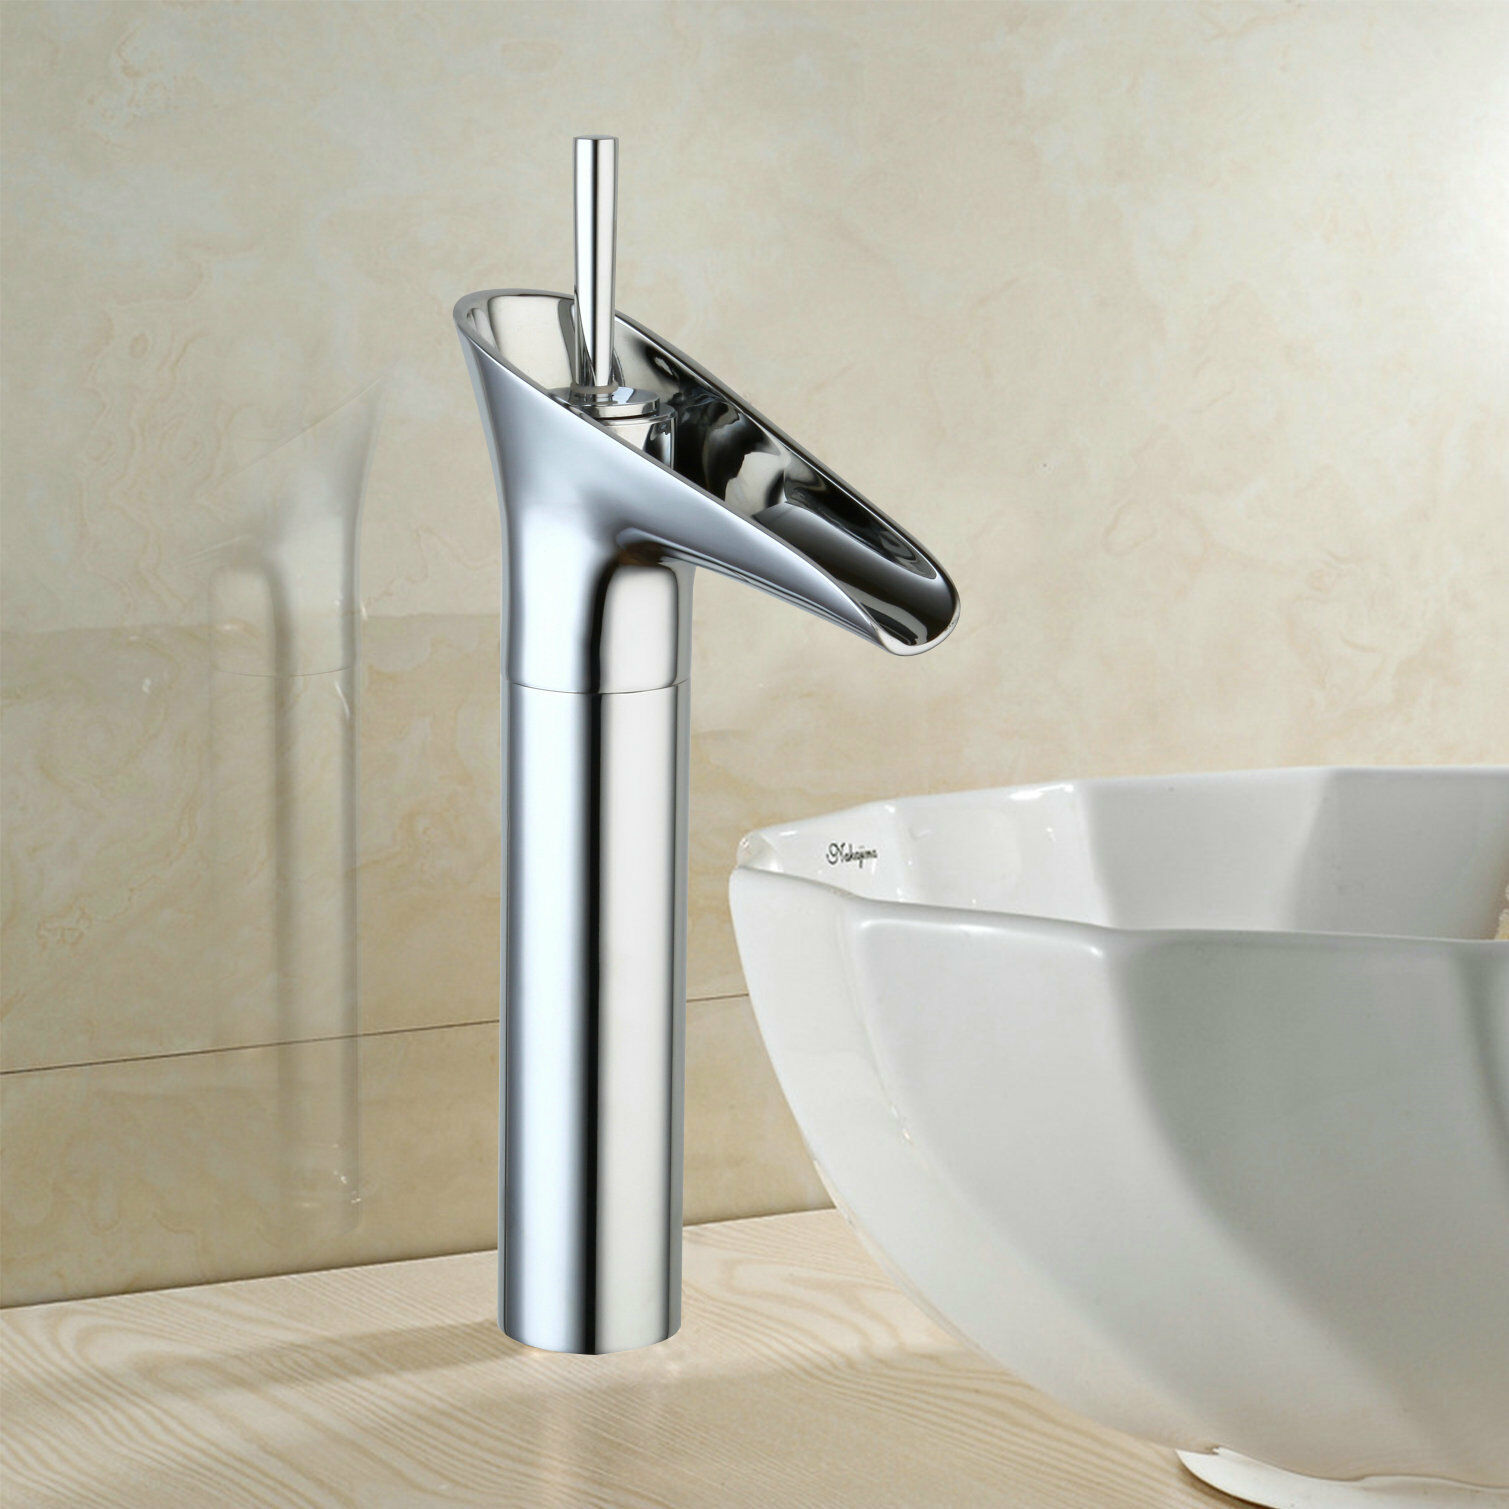 Chrome Bathroom Basin Sink Faucet Single Lever Hot & Cold Waterfall Mixer Taps